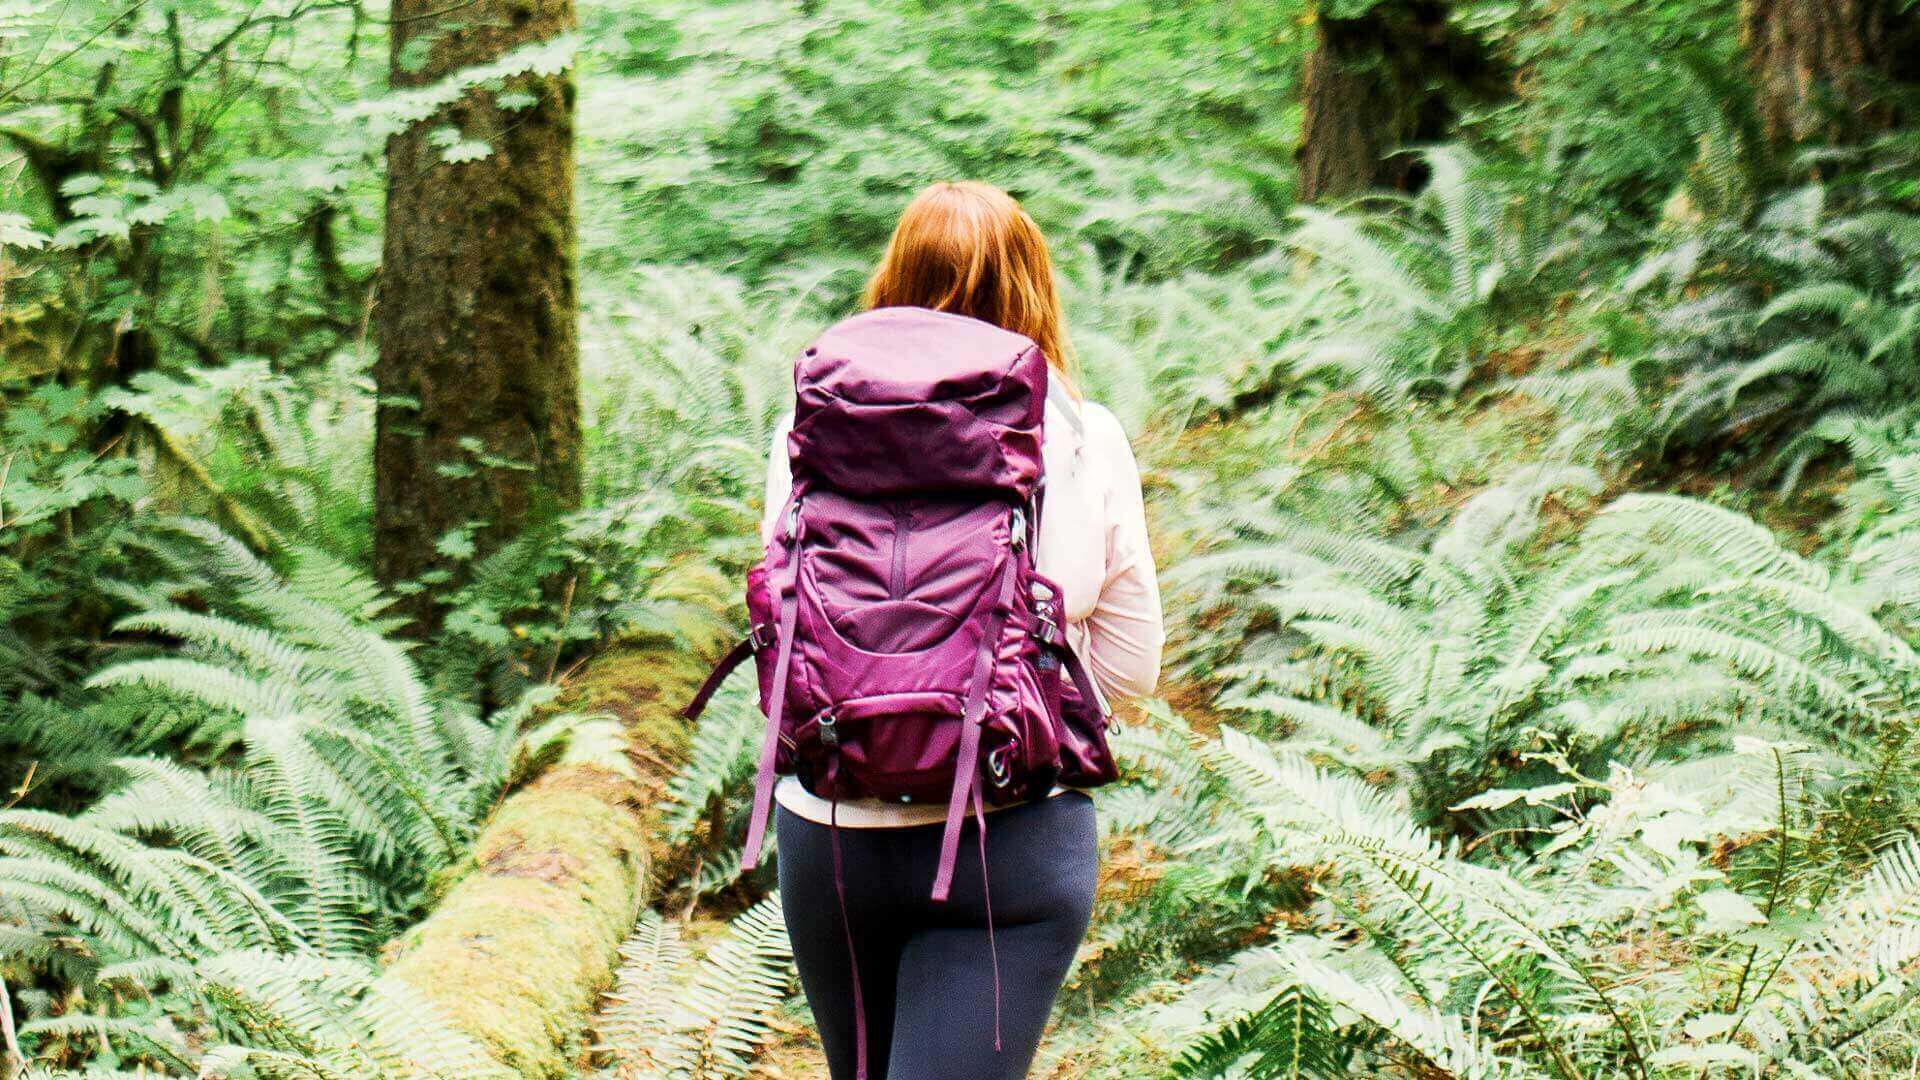 A red headed woman is hiking in a lush green forest wearing a purple backpack